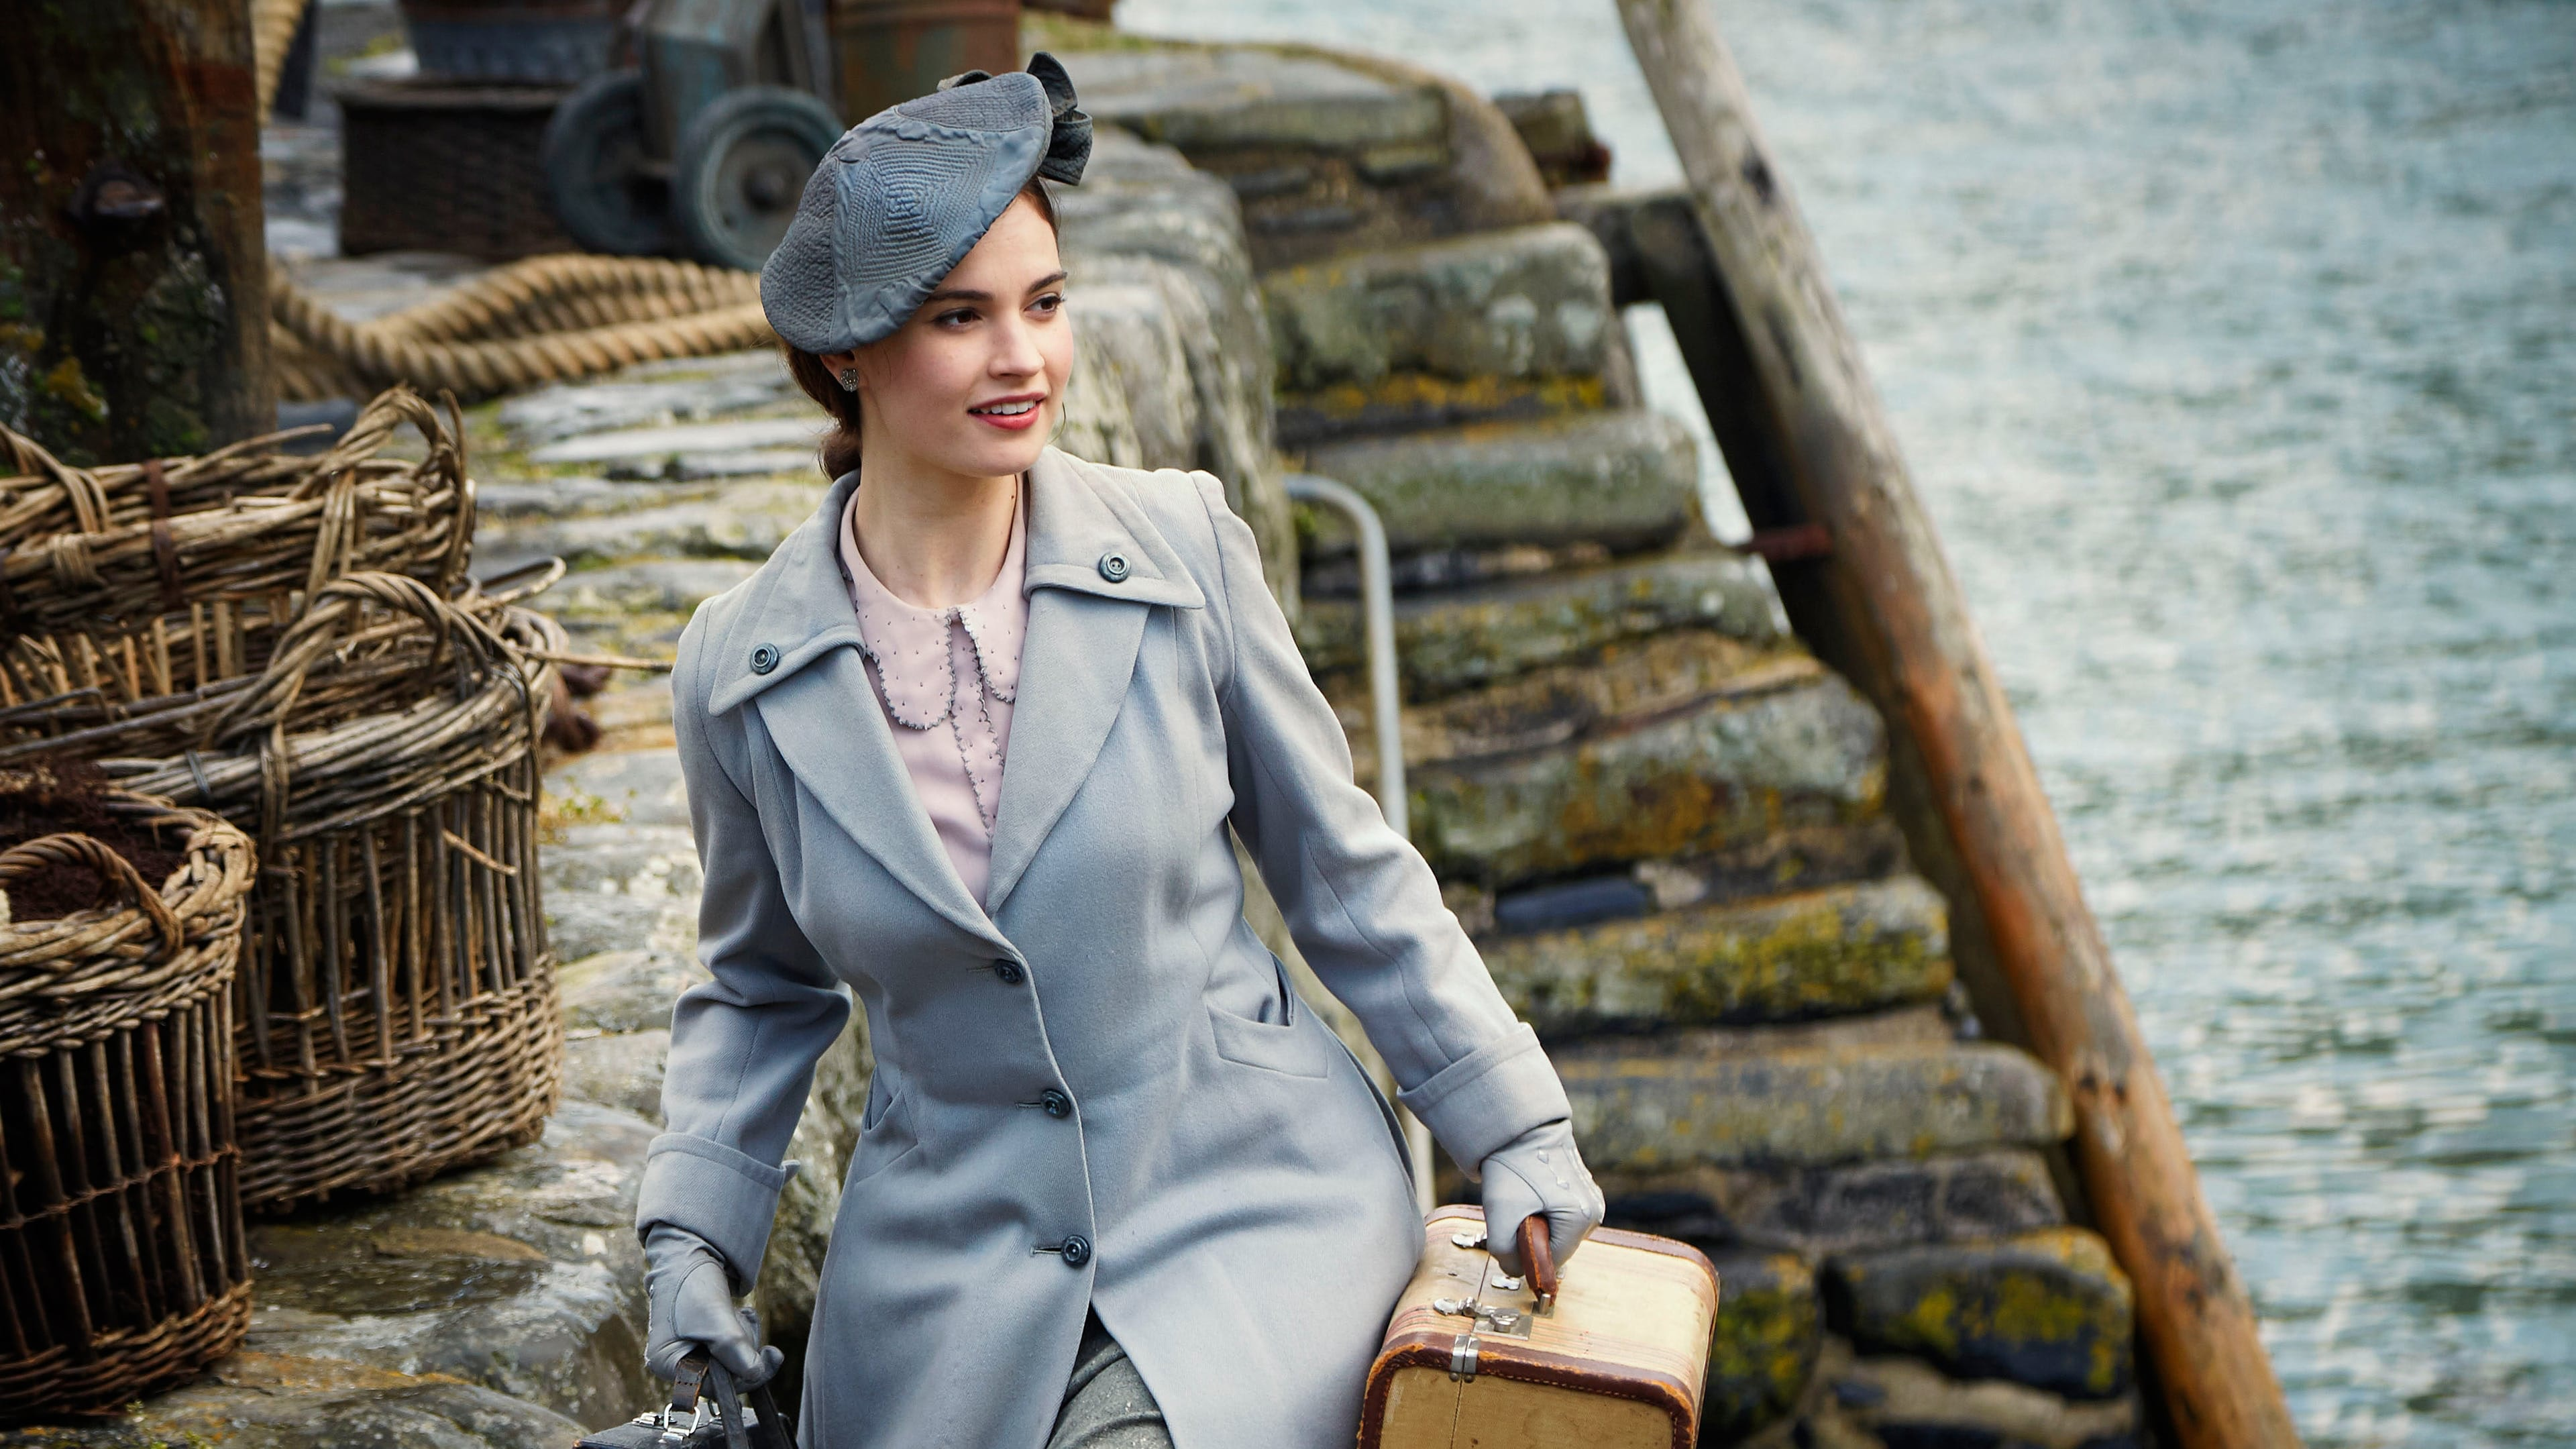 The Guernsey Literary and Potato Peel Pie Society Soundtrack